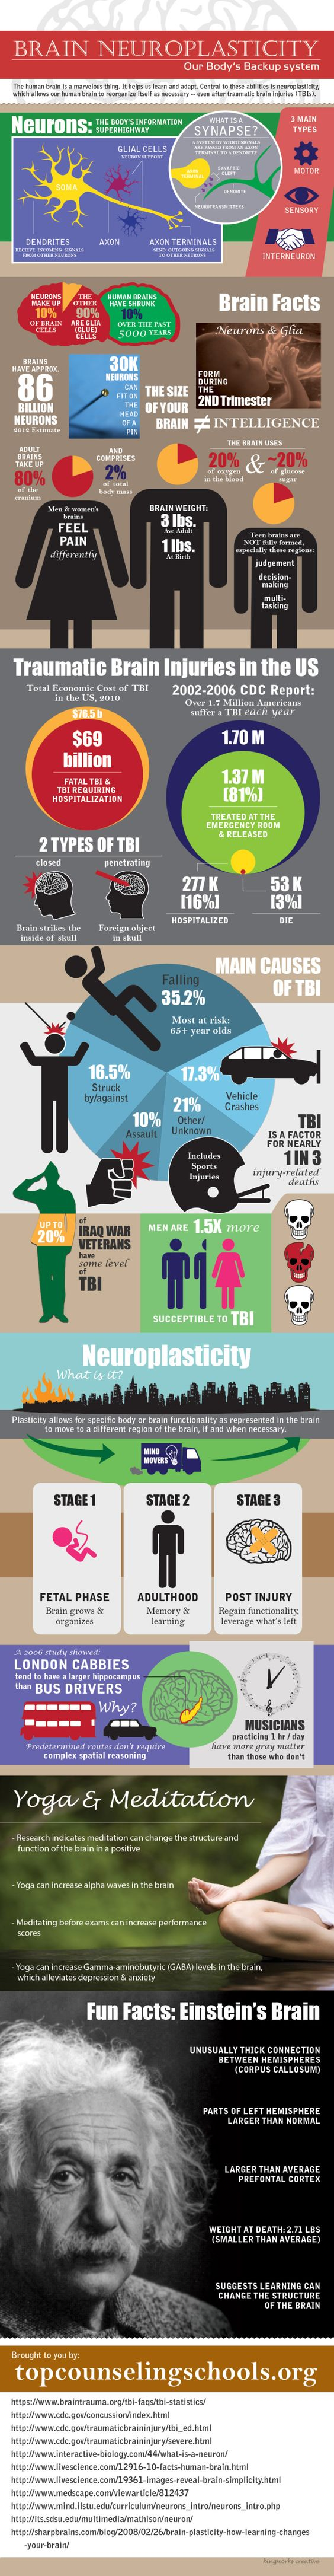 neuroplasticity advantages Infographic